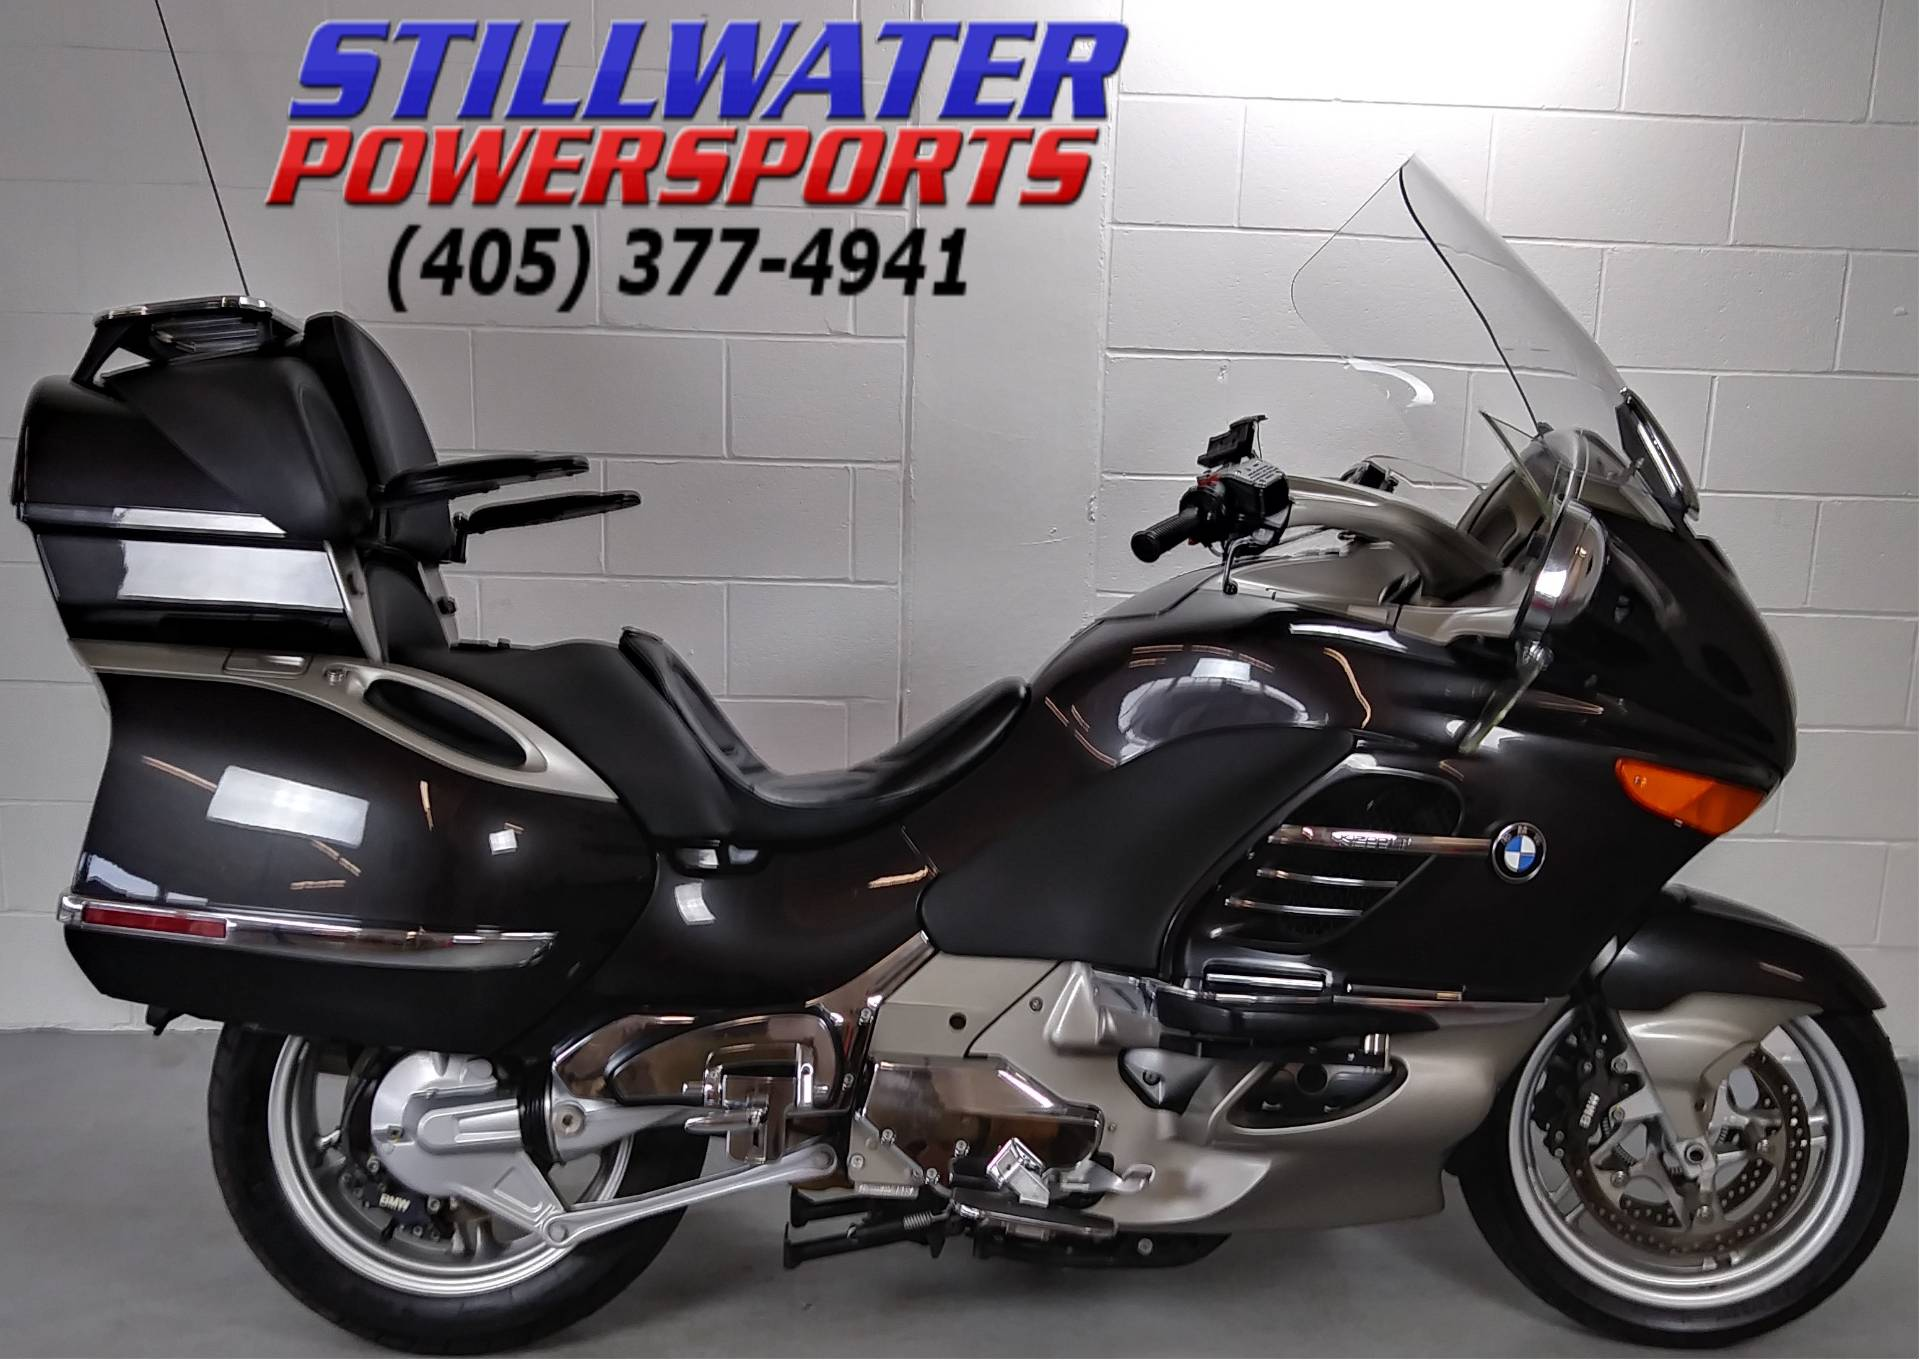 2006 BMW K 1200 LT in Stillwater, Oklahoma - Photo 1